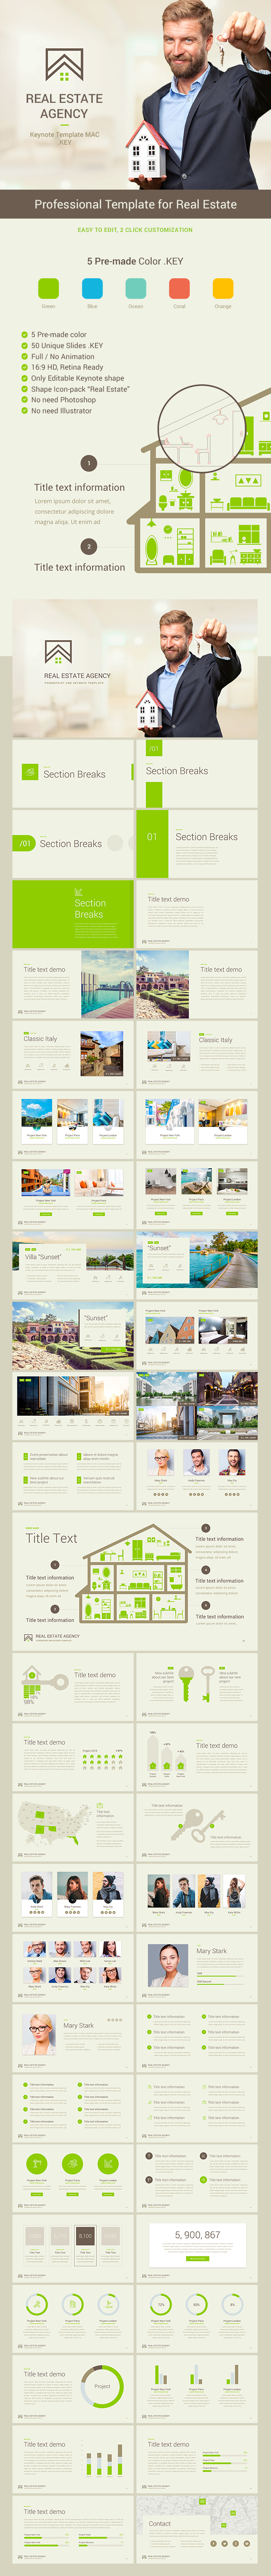 Real Estate Keynote Presentation Template - Business Keynote Templates